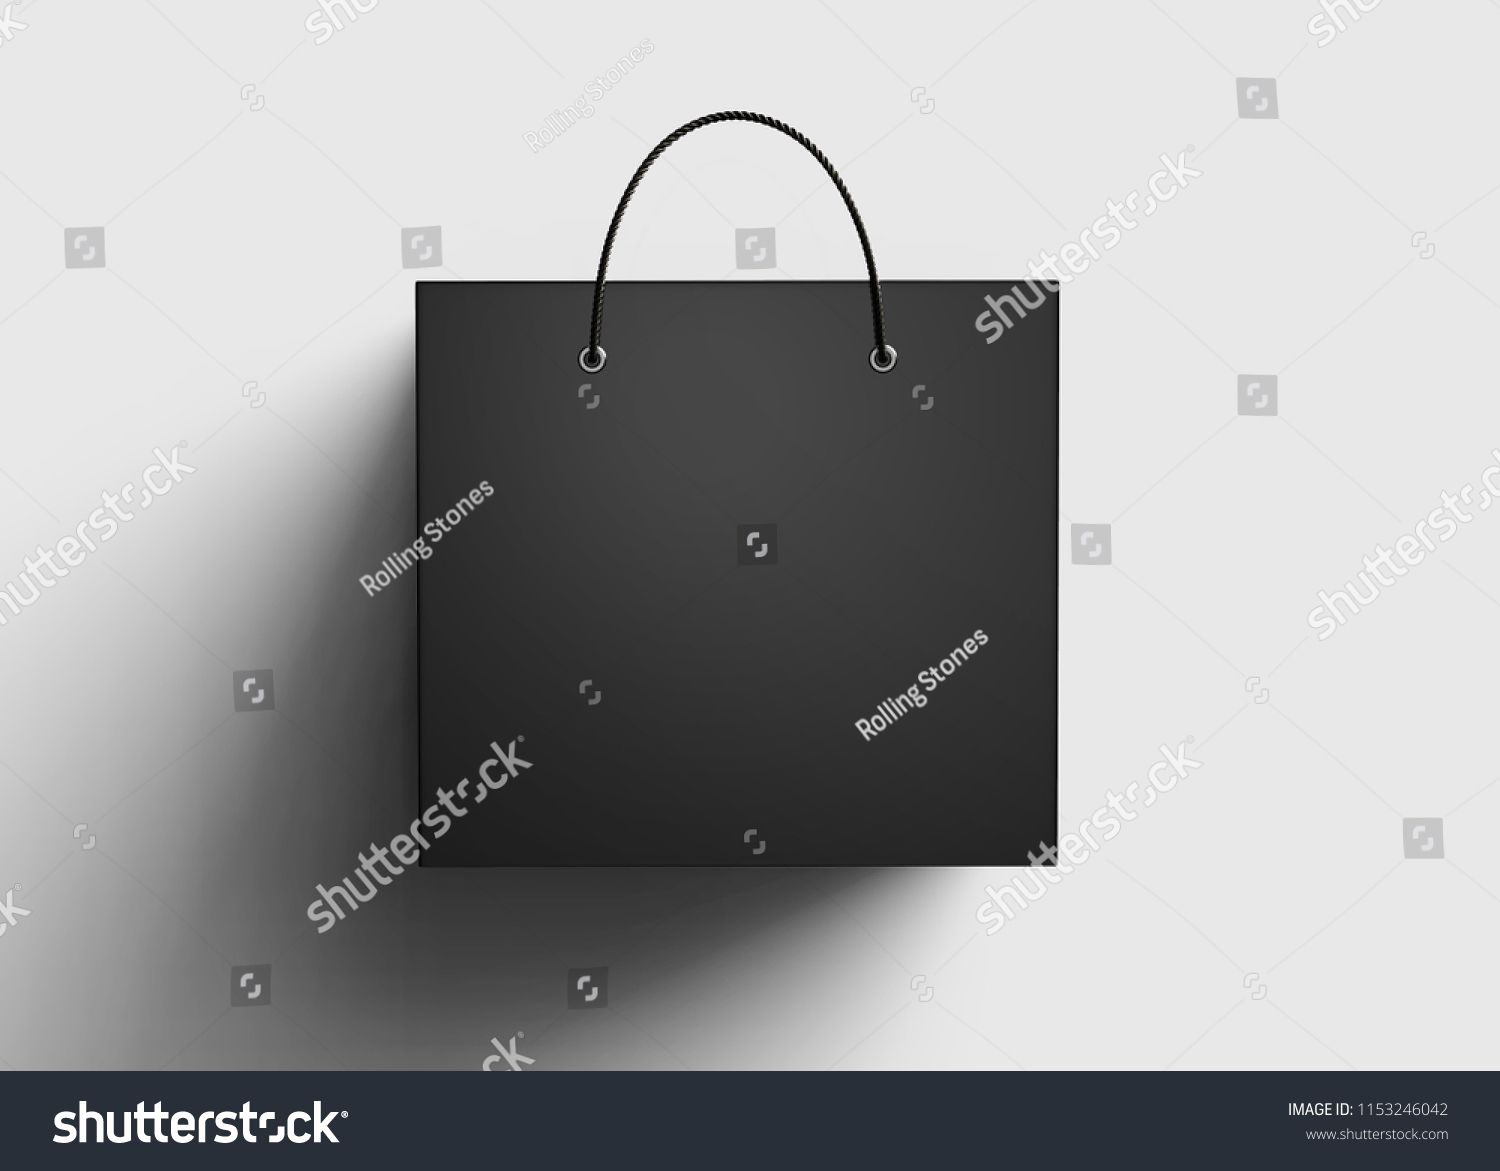 Download Isolated Black Paper Bag Mockup Template Lay Down On The Floor In 3d Render Top View Sponsored Ad Bag Mockup Pape Bag Mockup Black Paper Mockup Template